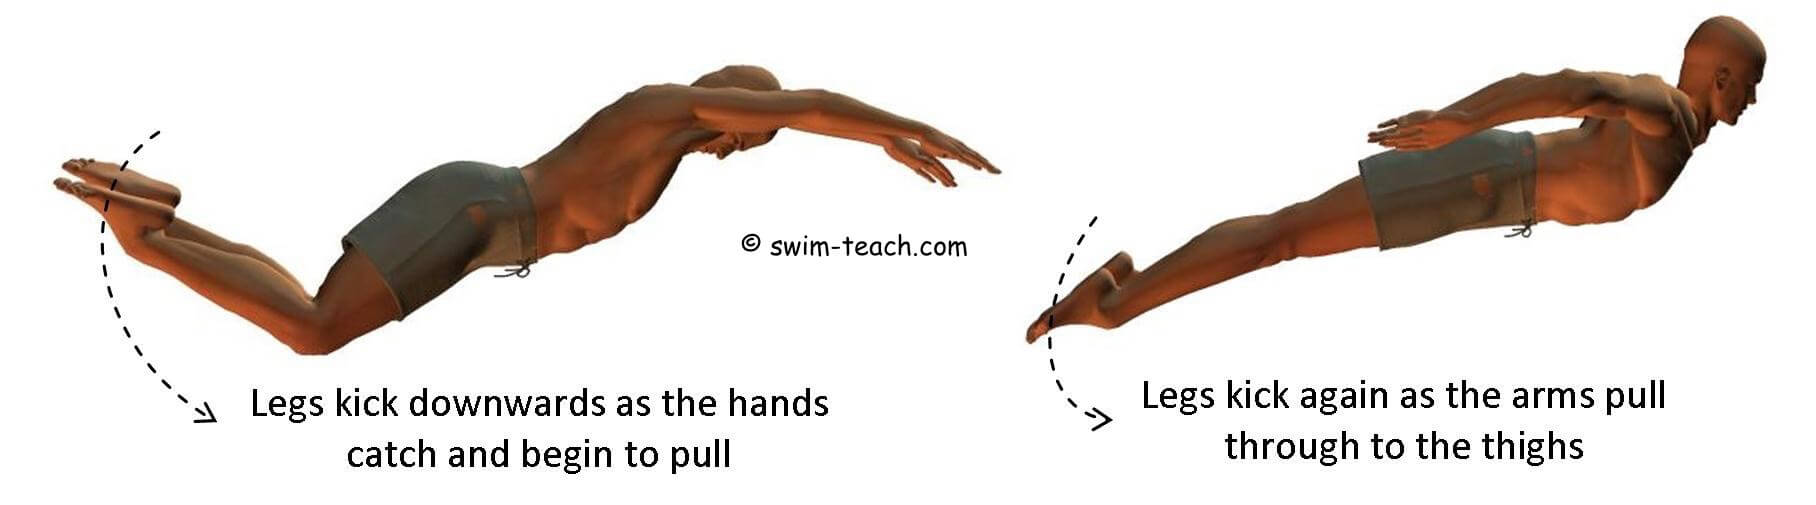 Butterfly stroke timing and coordination